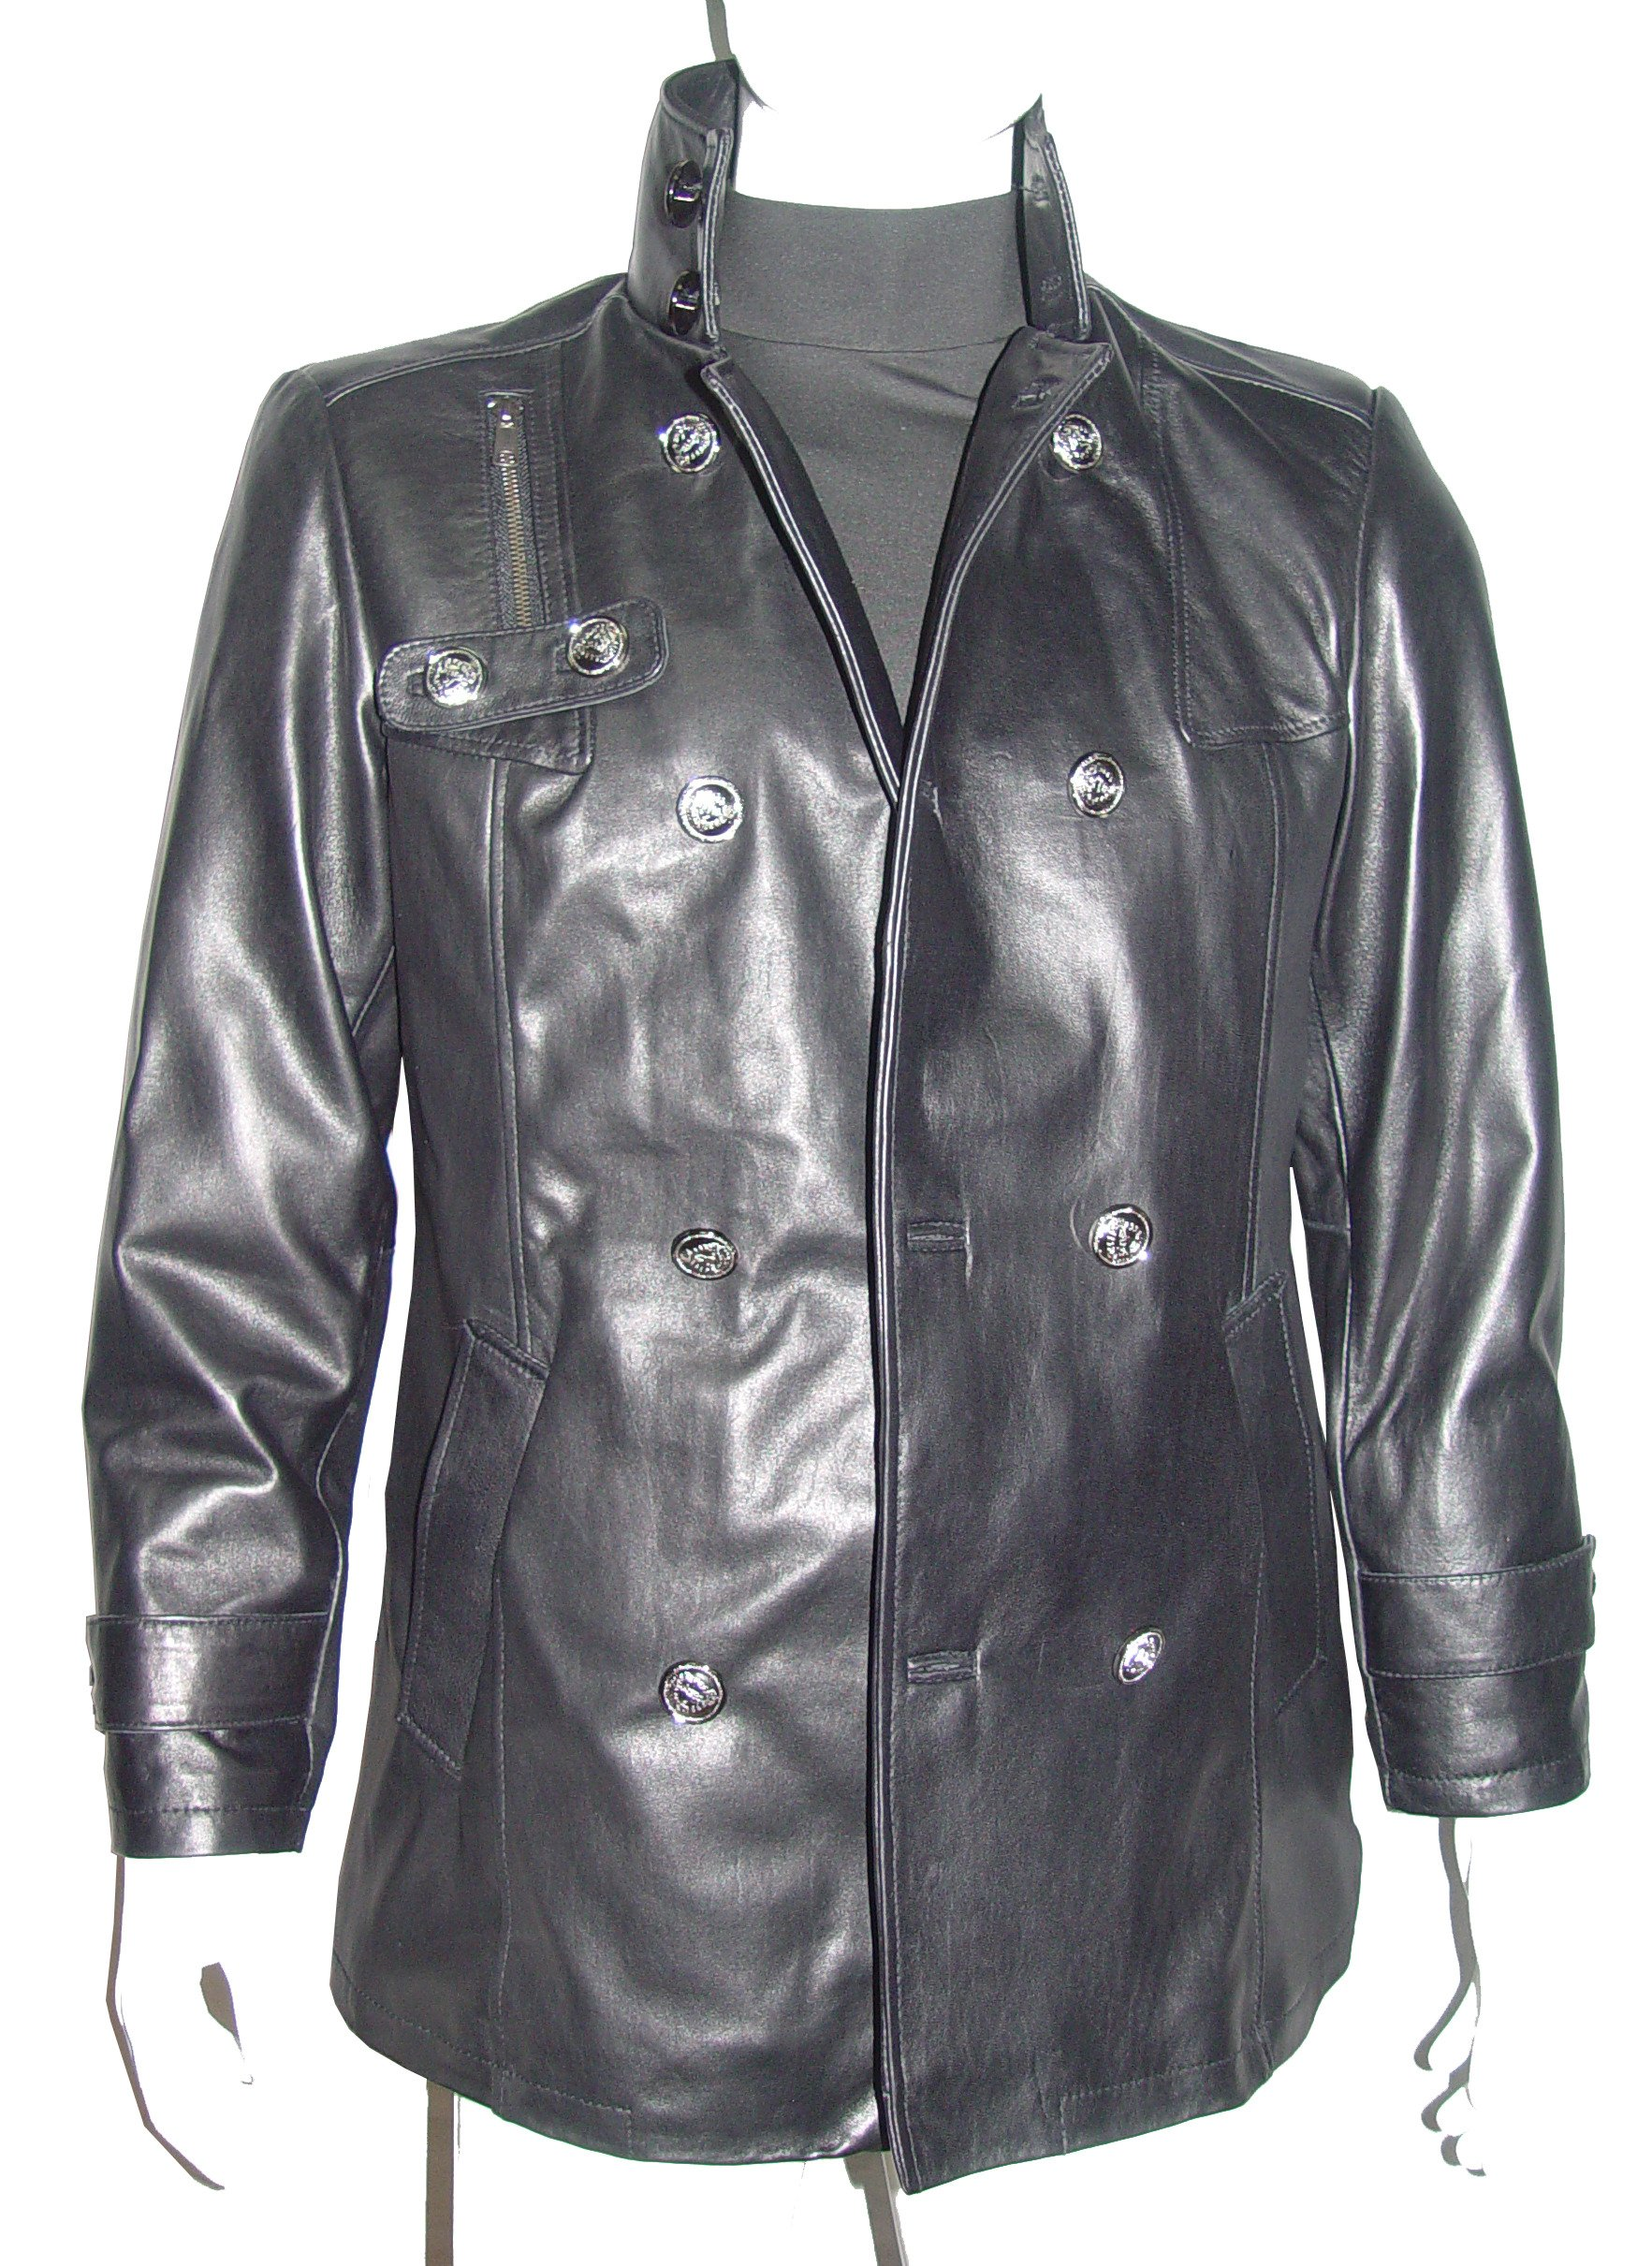 Nettailor 2039 Fine Leather Pea Coat Fashion for Men Large Size All Size